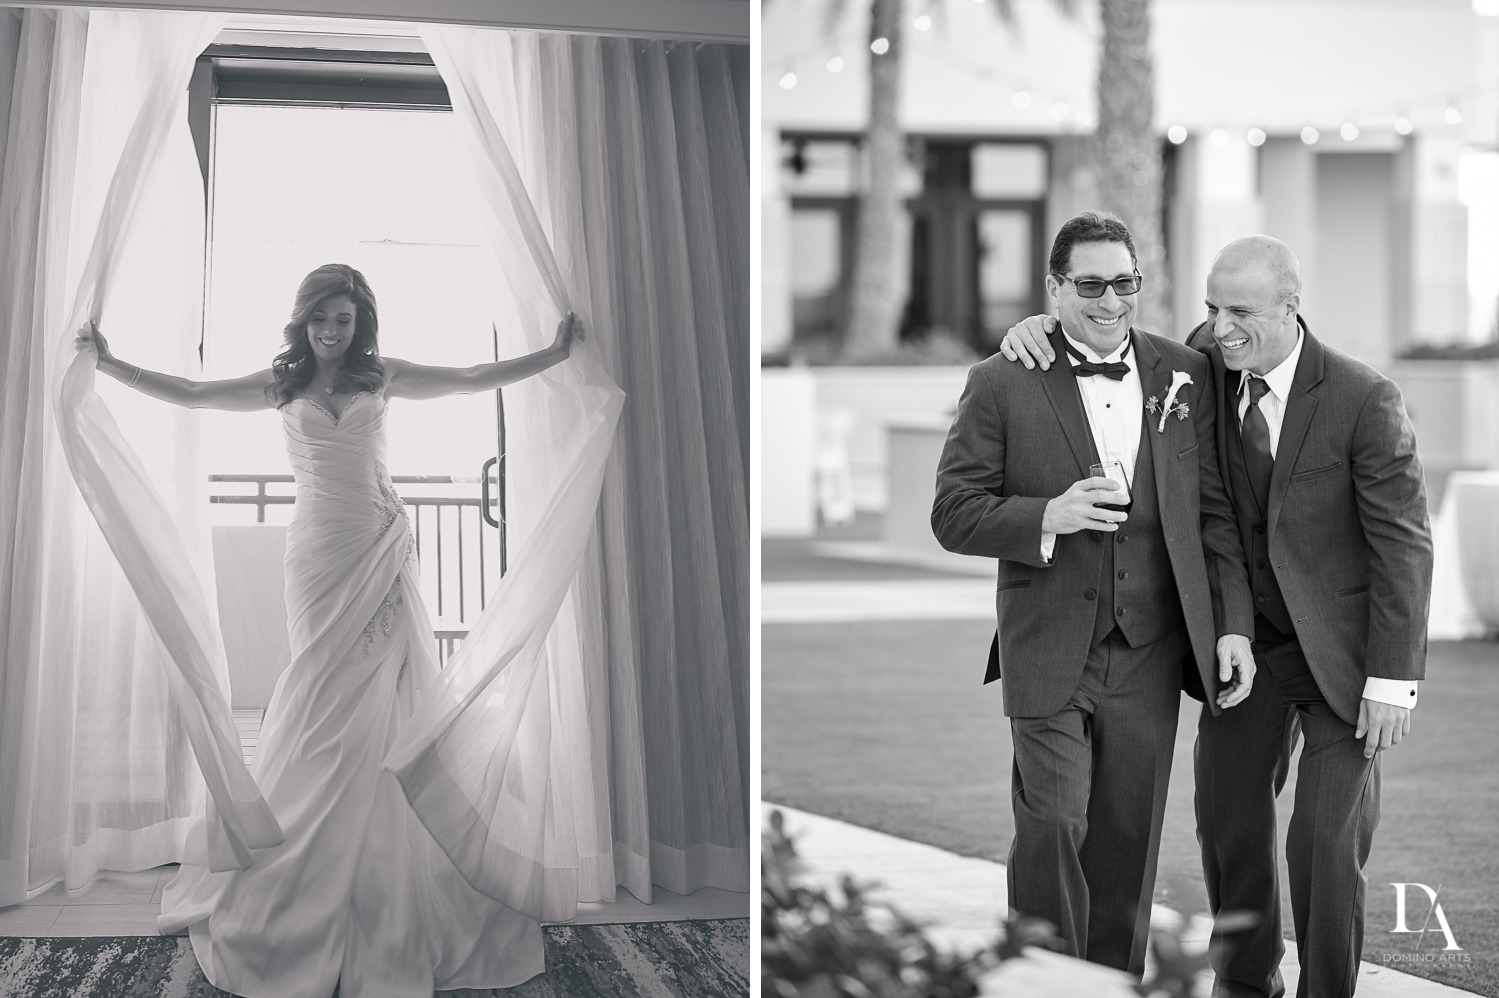 Black and white Wedding Photography in South Florida at Fort Lauderdale Marriott Harbor Beach Resort & Spa by Domino Arts Photography